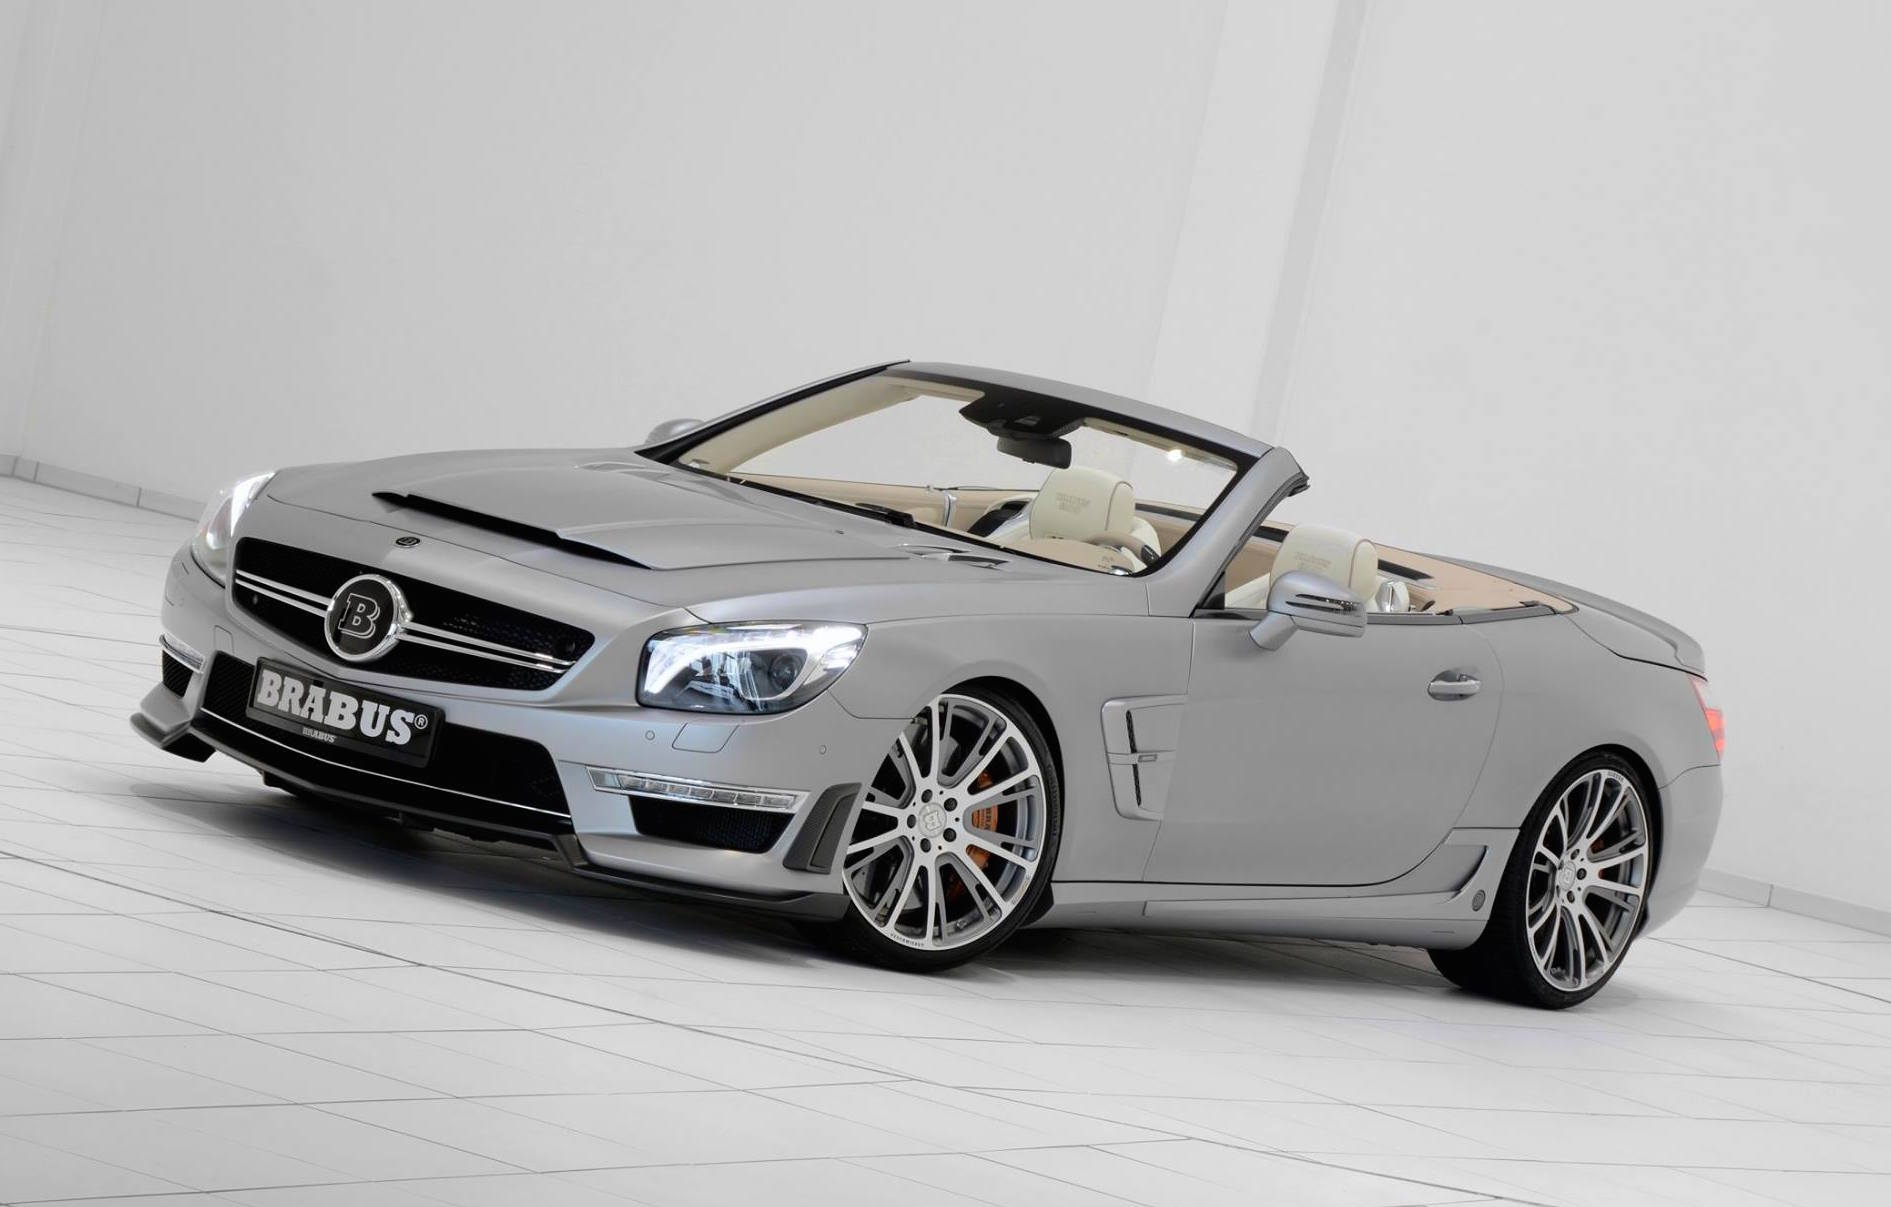 brabus 800 is one beastly mercedes sl 65 amg performancedrive. Black Bedroom Furniture Sets. Home Design Ideas